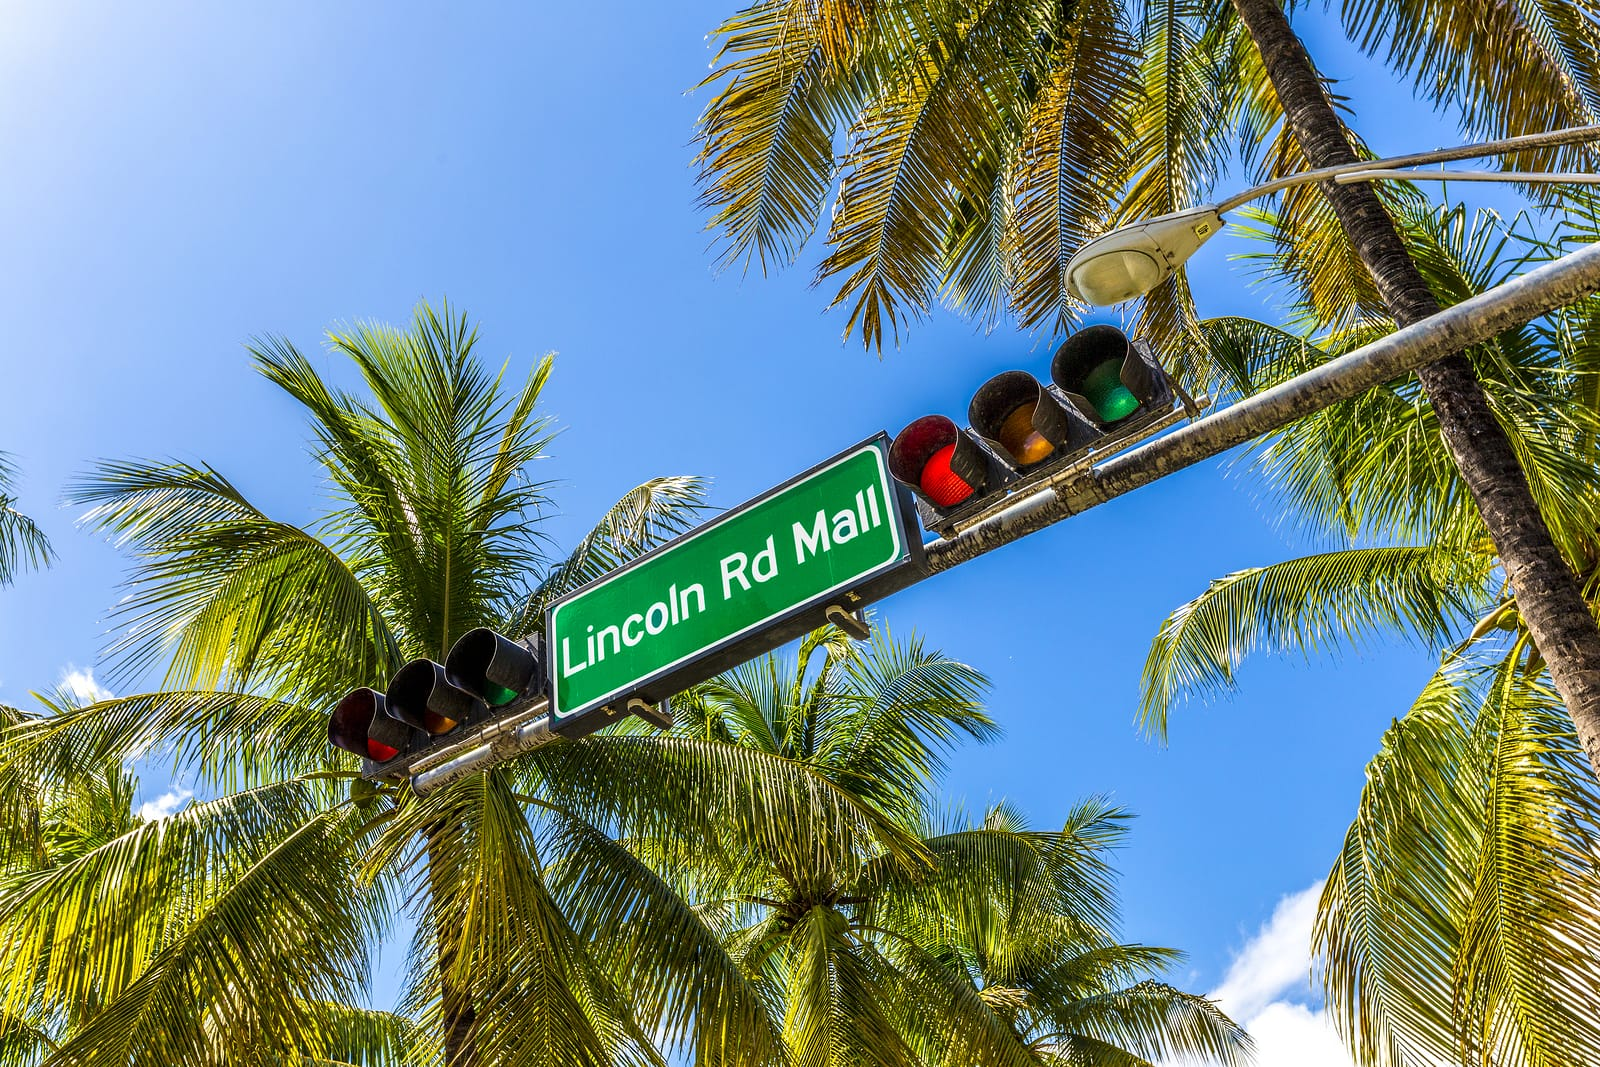 GLM-Street-Sign-Lincoln-Road-Mall.jpg